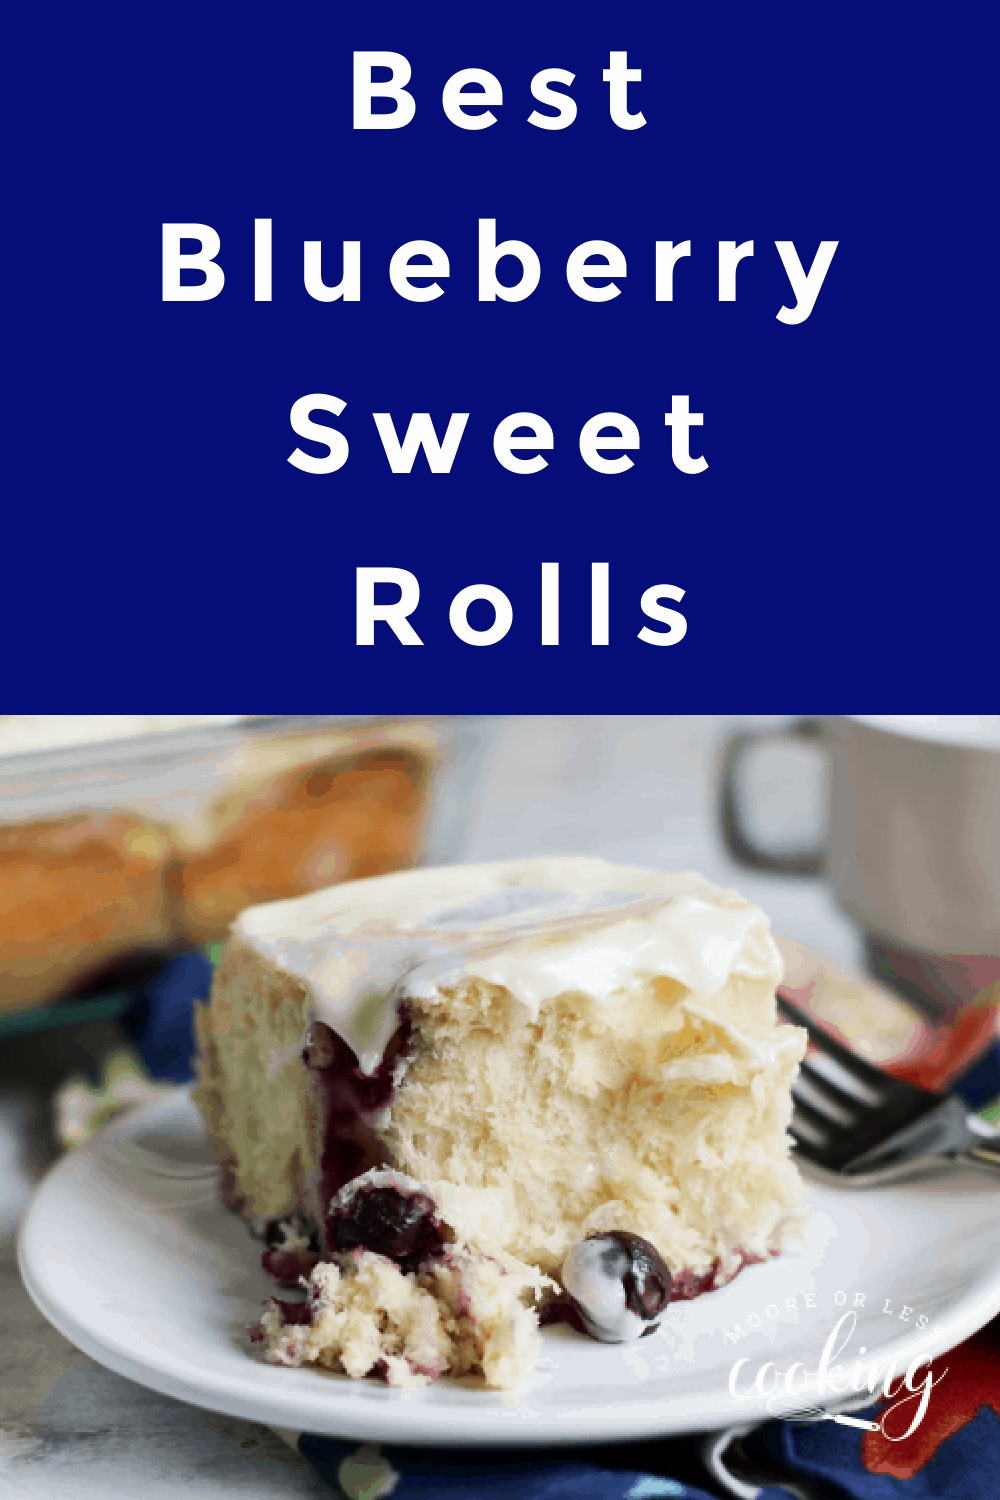 Best blueberry sweet rolls are soft sweet rolls that are bursting with blueberries and covered in cream cheese frosting. A perfect treat for breakfast, brunch, or dessert. via @Mooreorlesscook